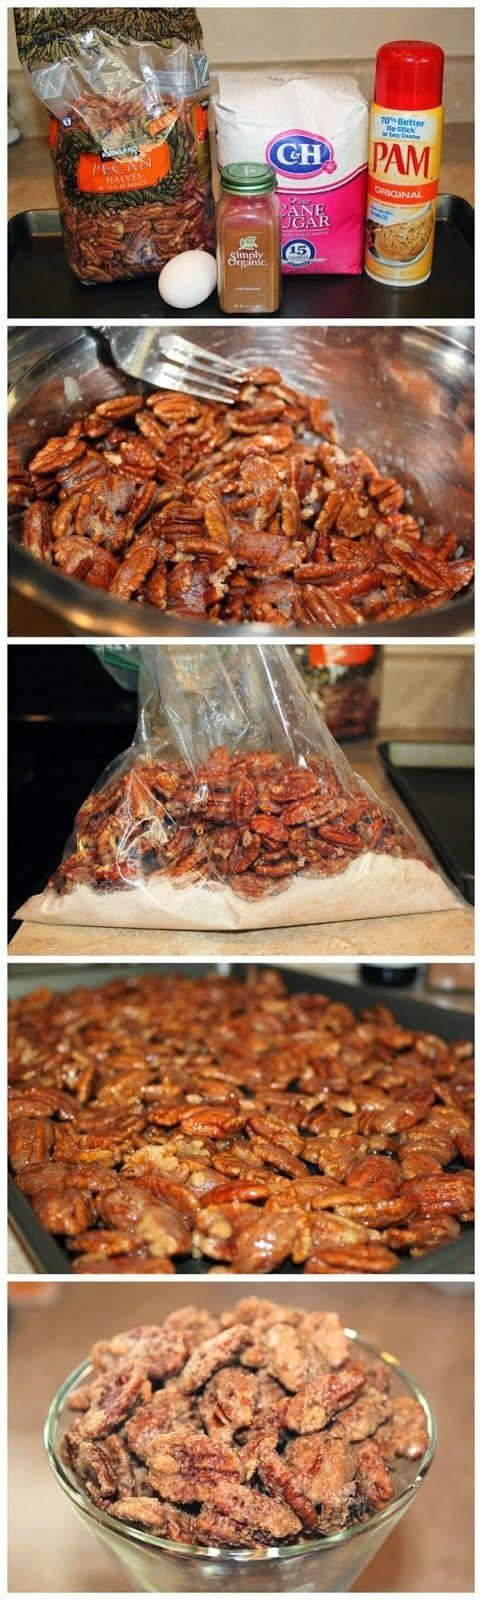 Cinnamon Sugar Pecans Recipe ~ They are Amazing!                                                                                                                                                                                 More